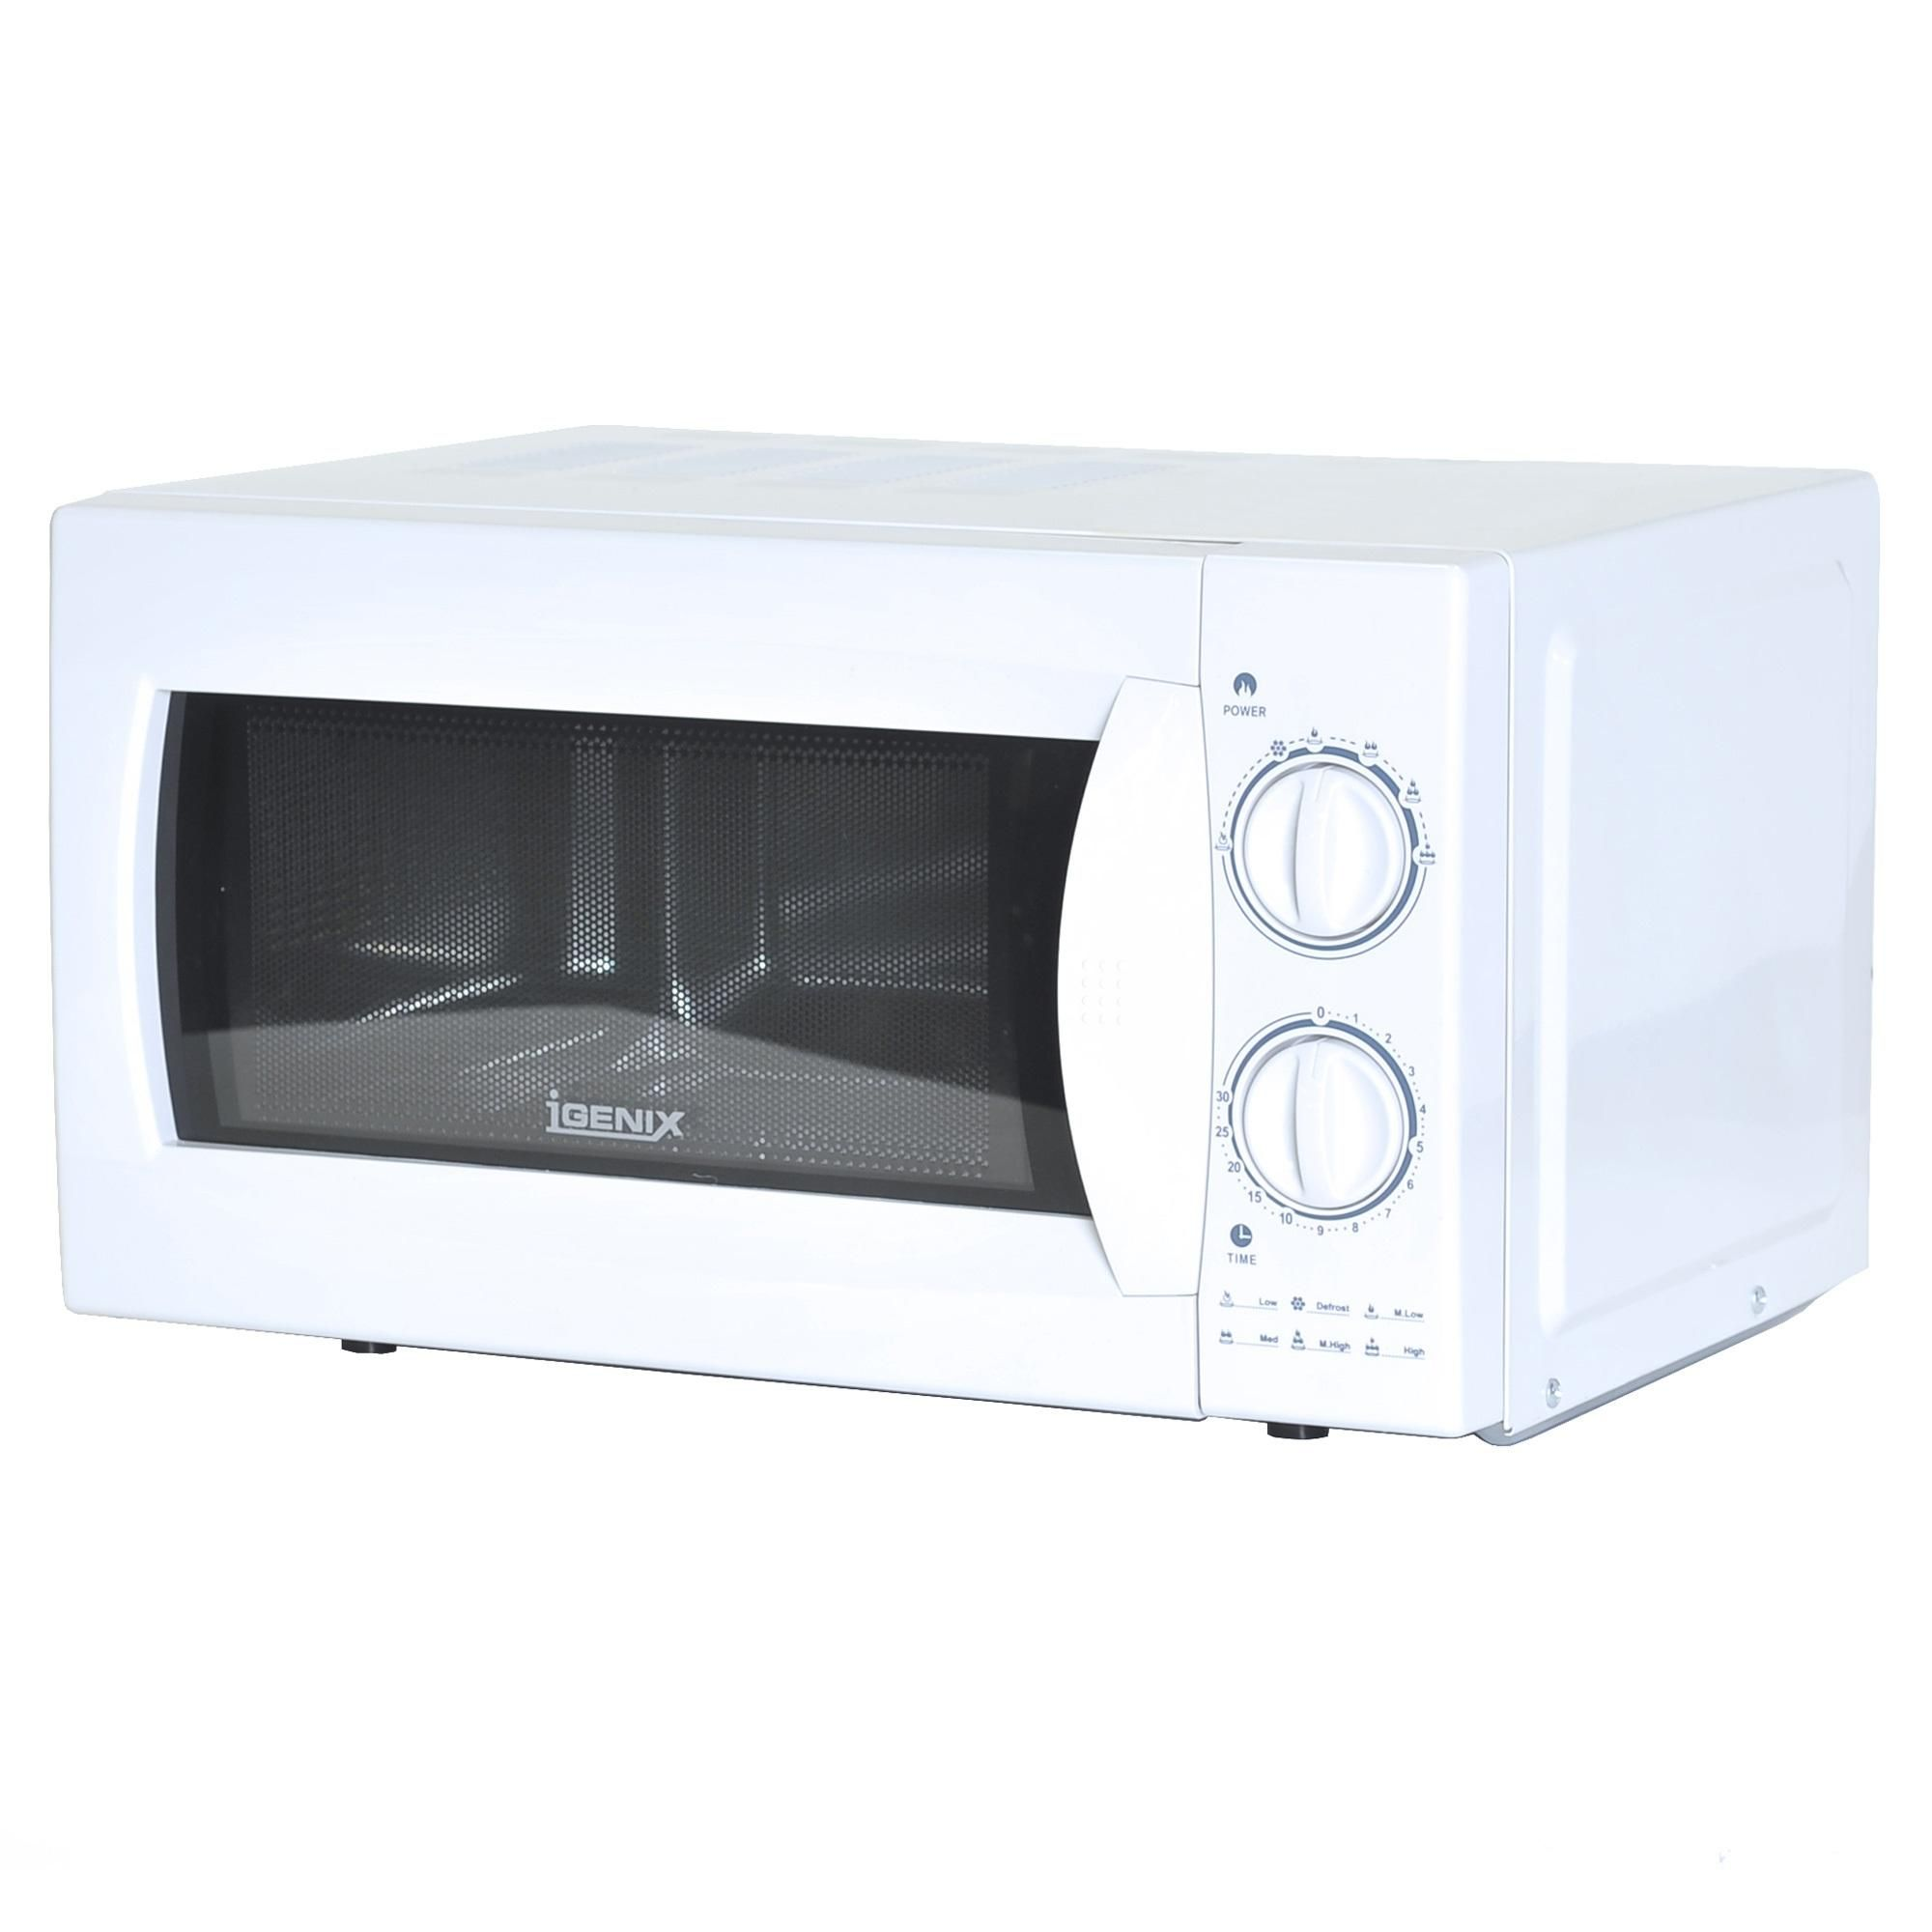 Compact microwave stainless steel interior bestmicrowave - Stainless steel microwave interior ...